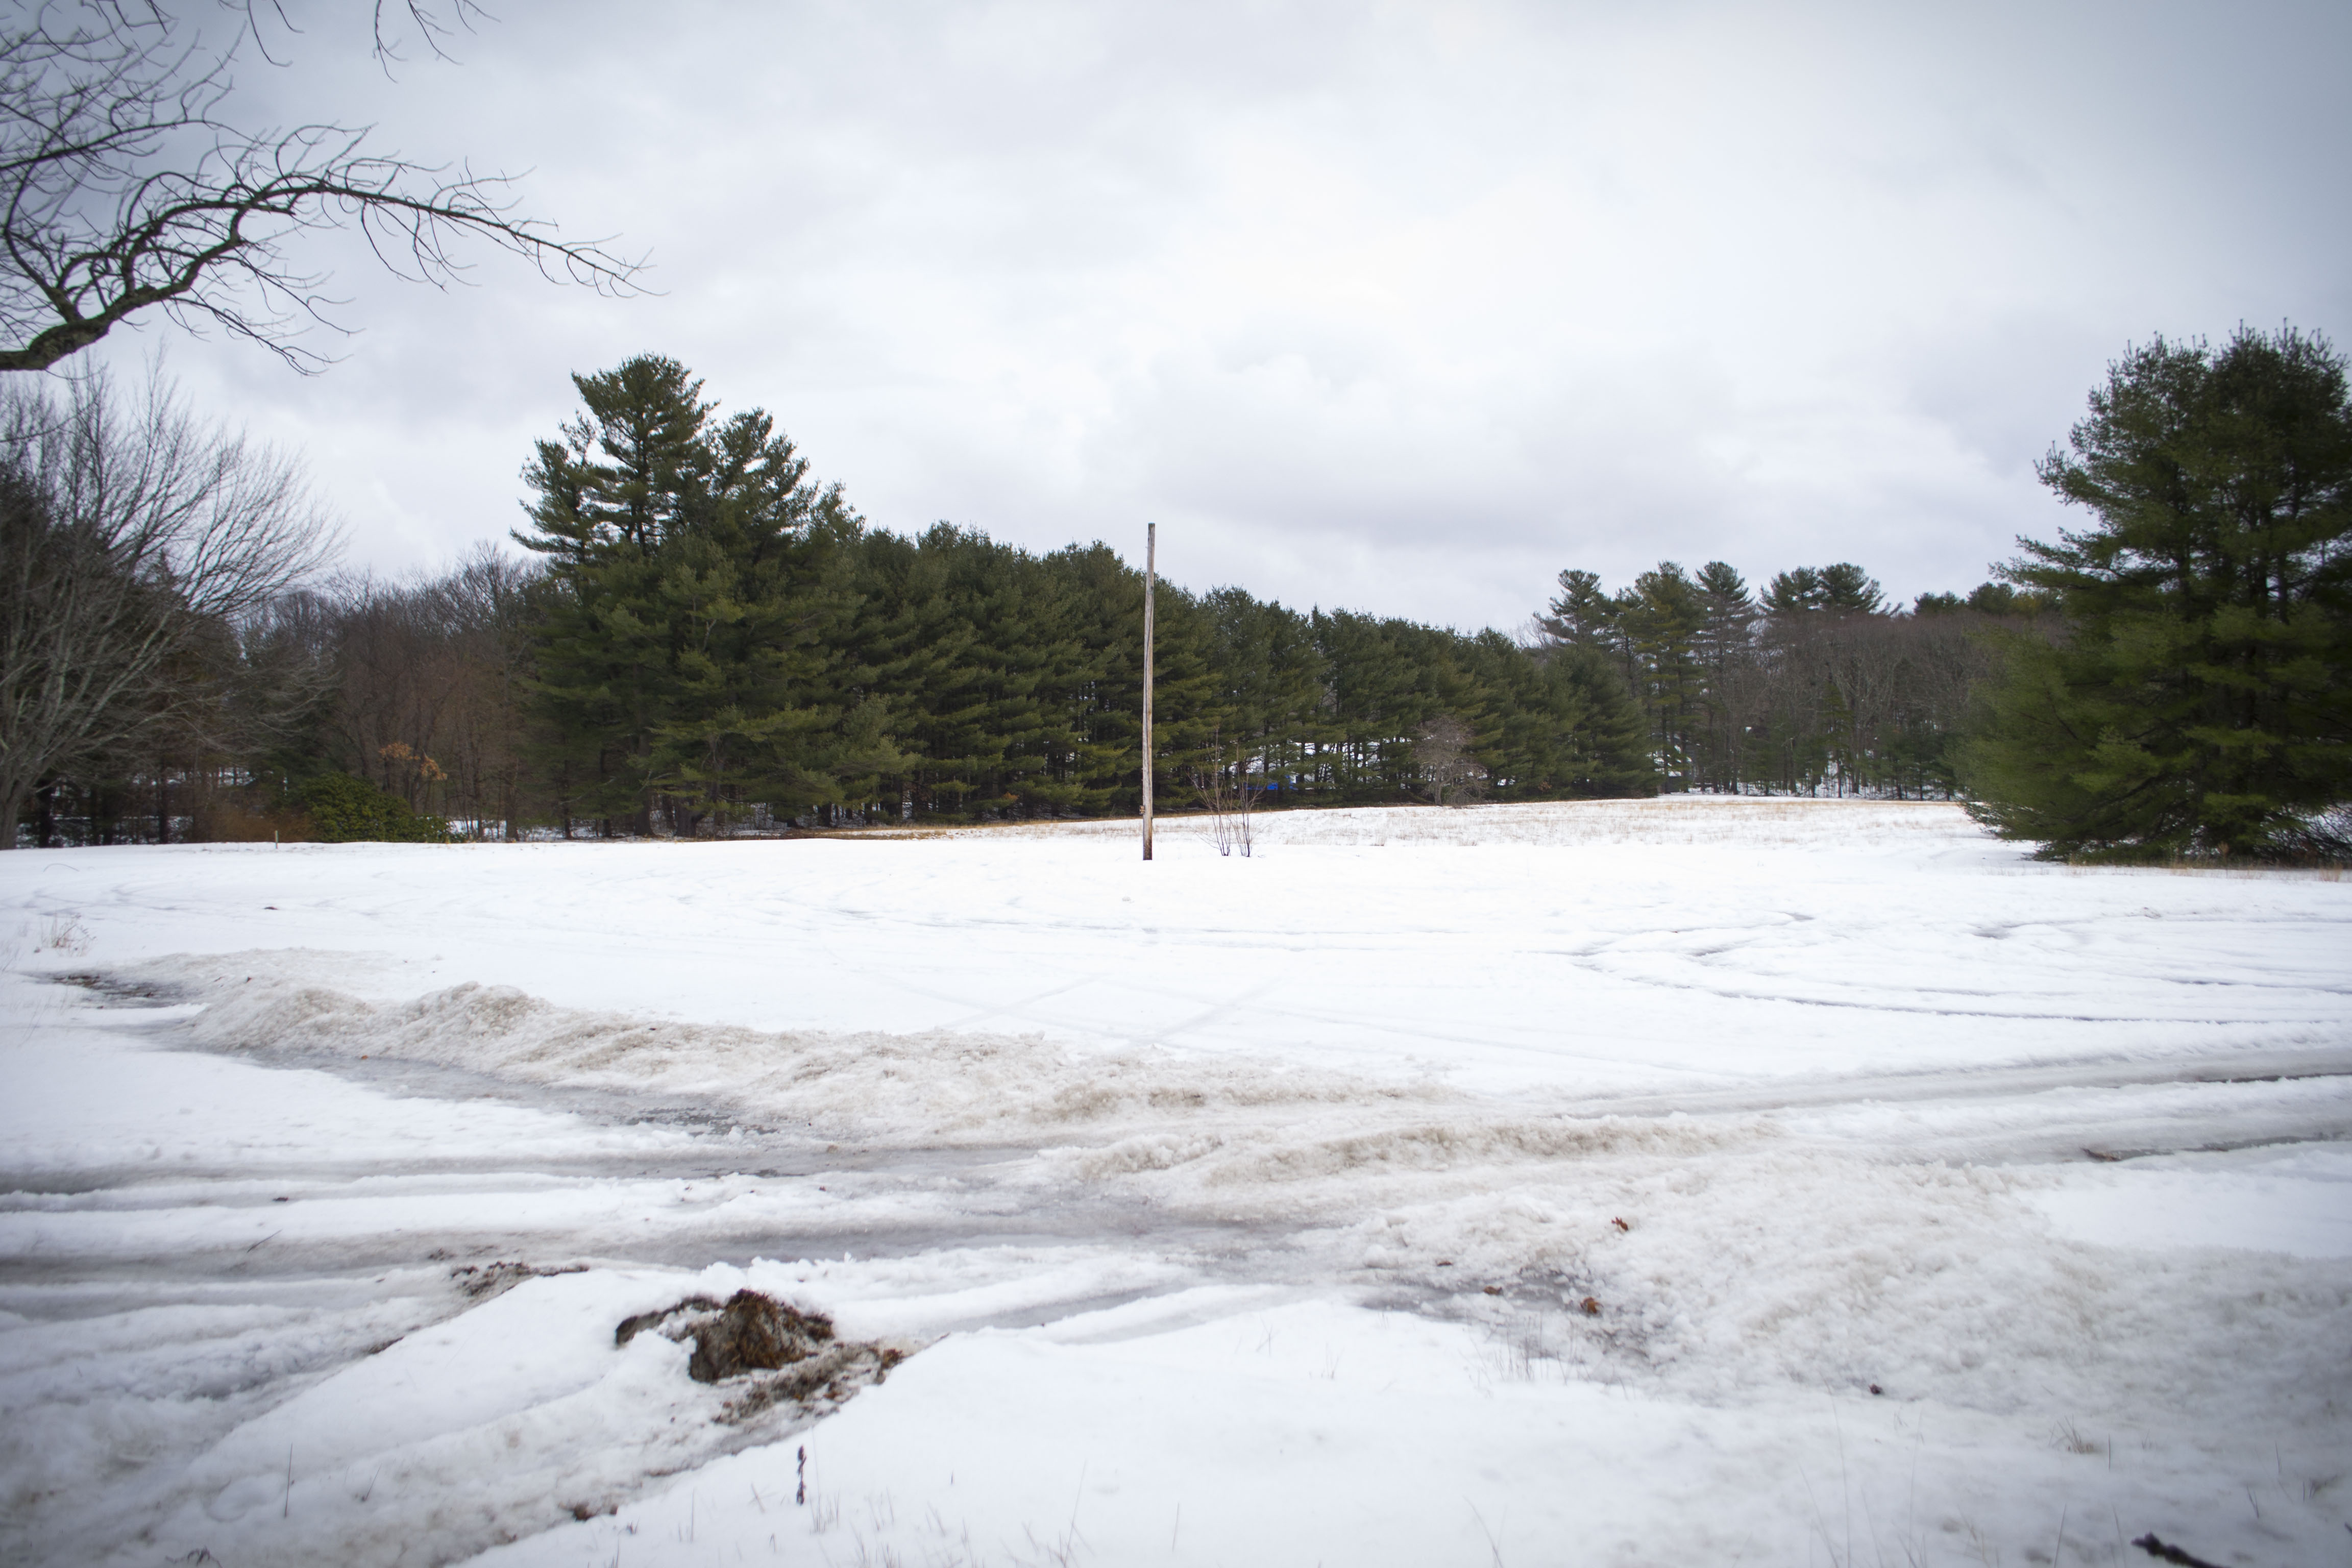 A parcel of land at 511-515 Elm Street in Biddeford, known as the Pate Property, will officially become the site of a consolidated York County courthouse in 2020, after the Biddeford City Council unanimously approved the sale of the property on Tuesday. ALAN BENNETT/Journal Tribune